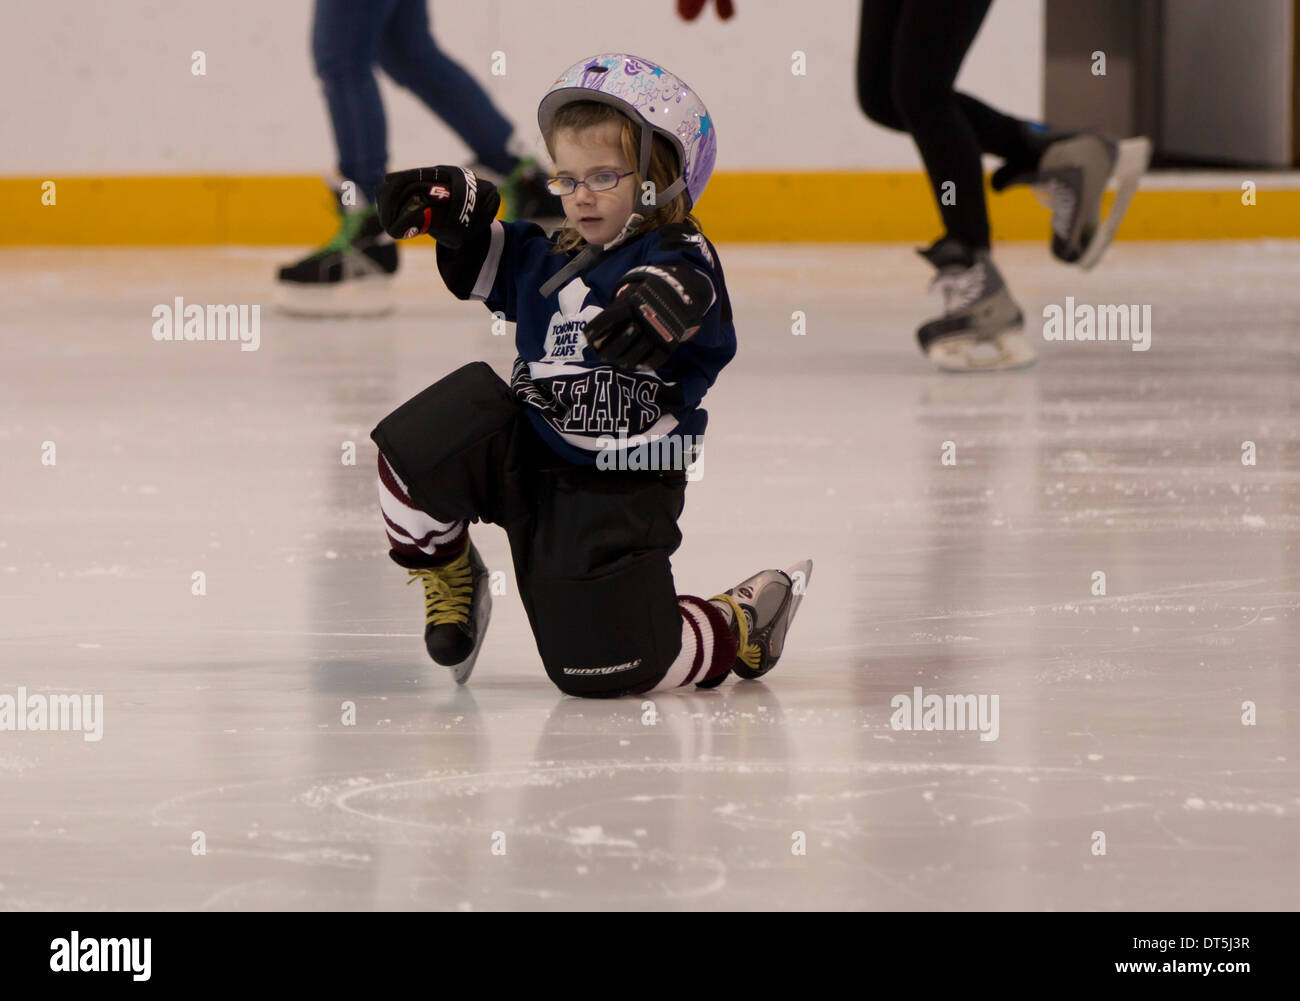 little-girl-with-glasses-getting-up-from-the-ice-wearing-toronto-maple-DT5J3R.jpg